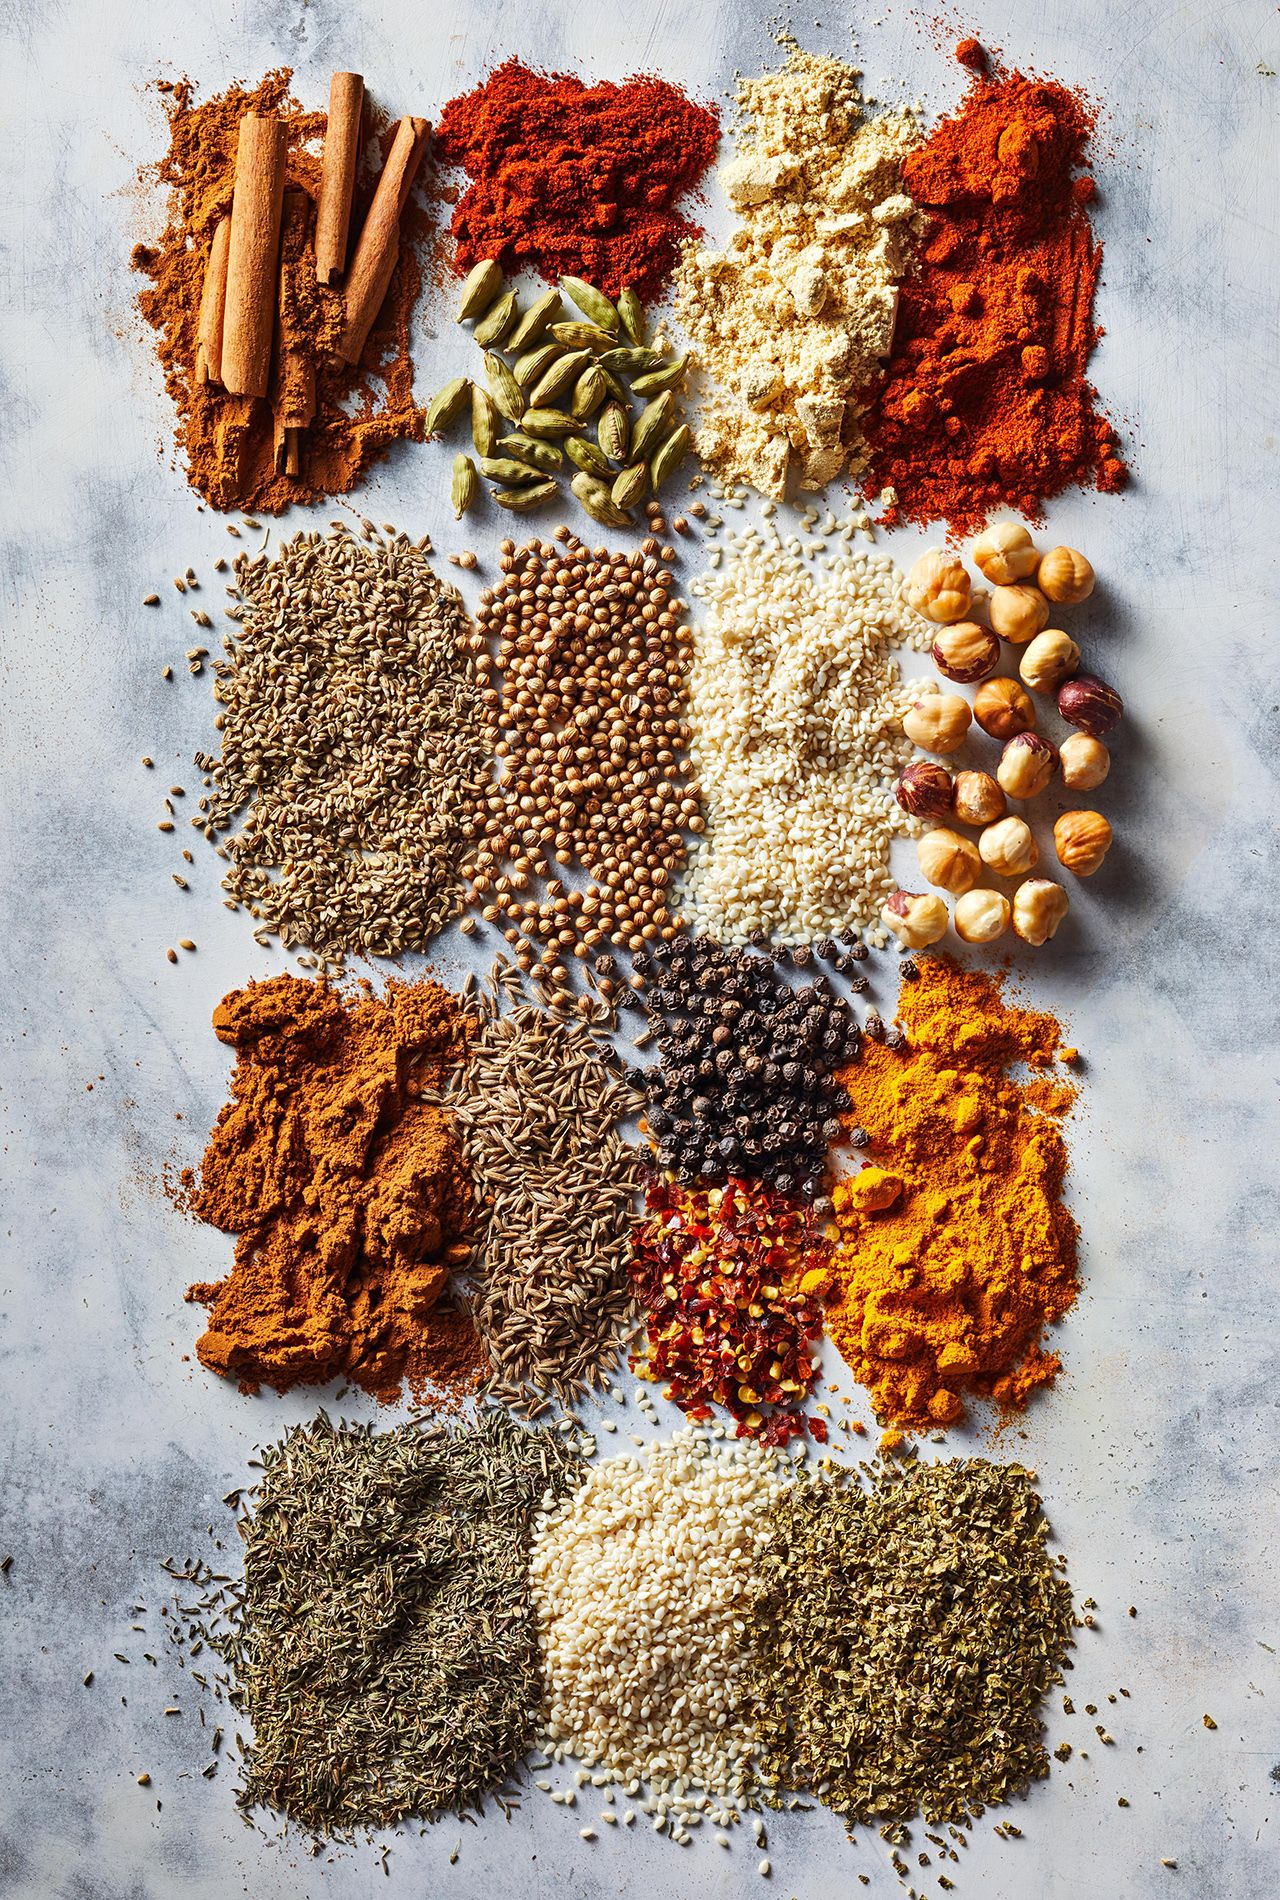 The Most Important Spice Blends For You To Know Spice Mix Recipes Spice Blends Recipes Spice Blends